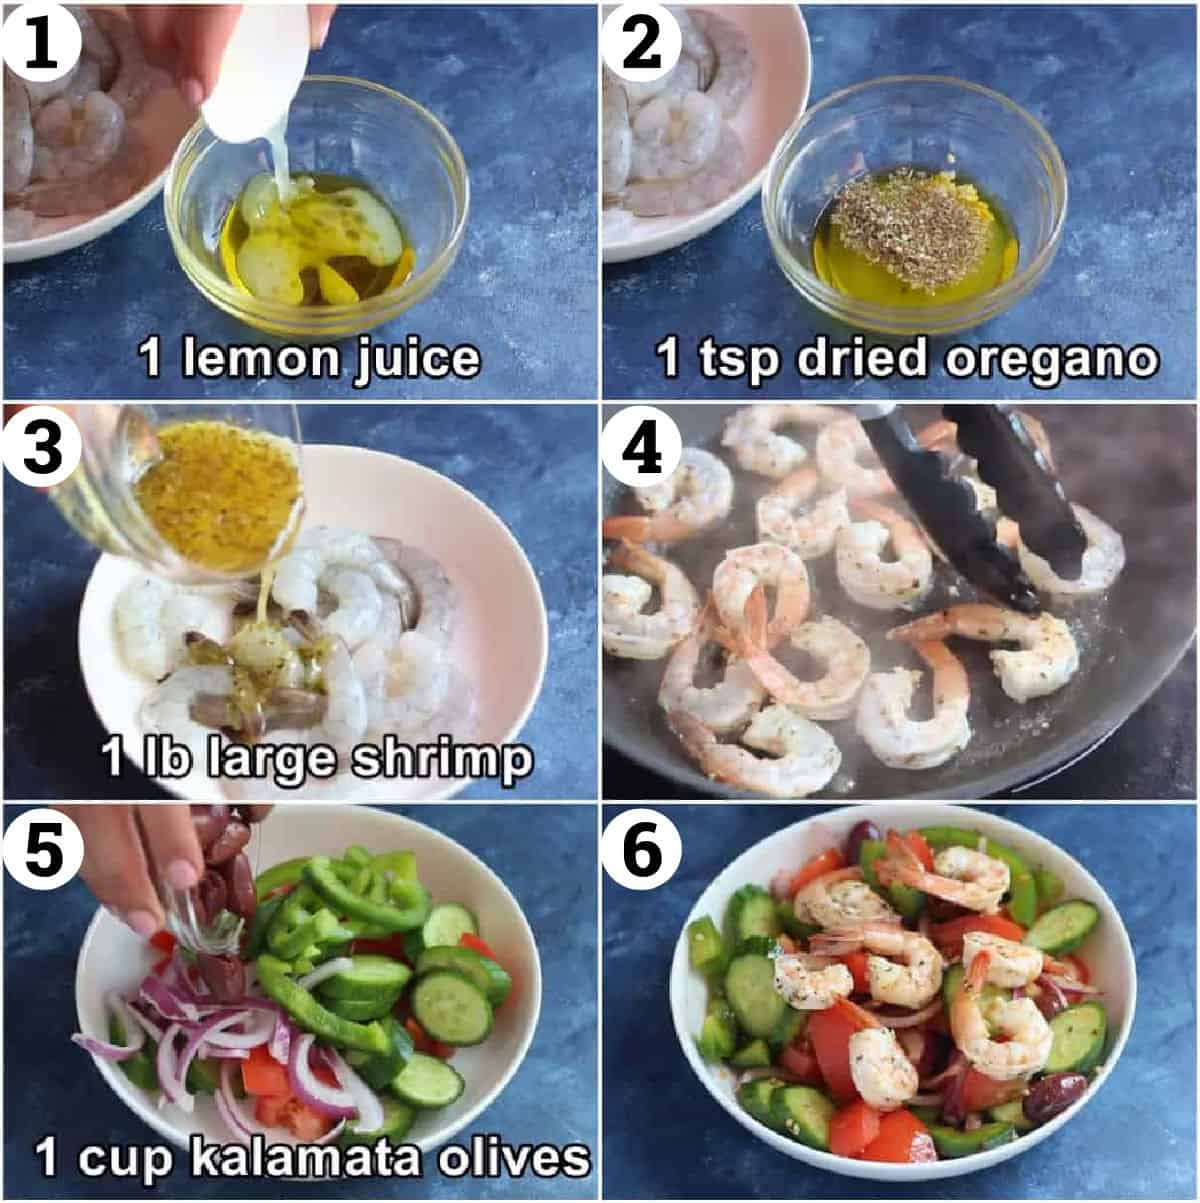 make the marinade then use half to cook the shrimp and half as a dressing.